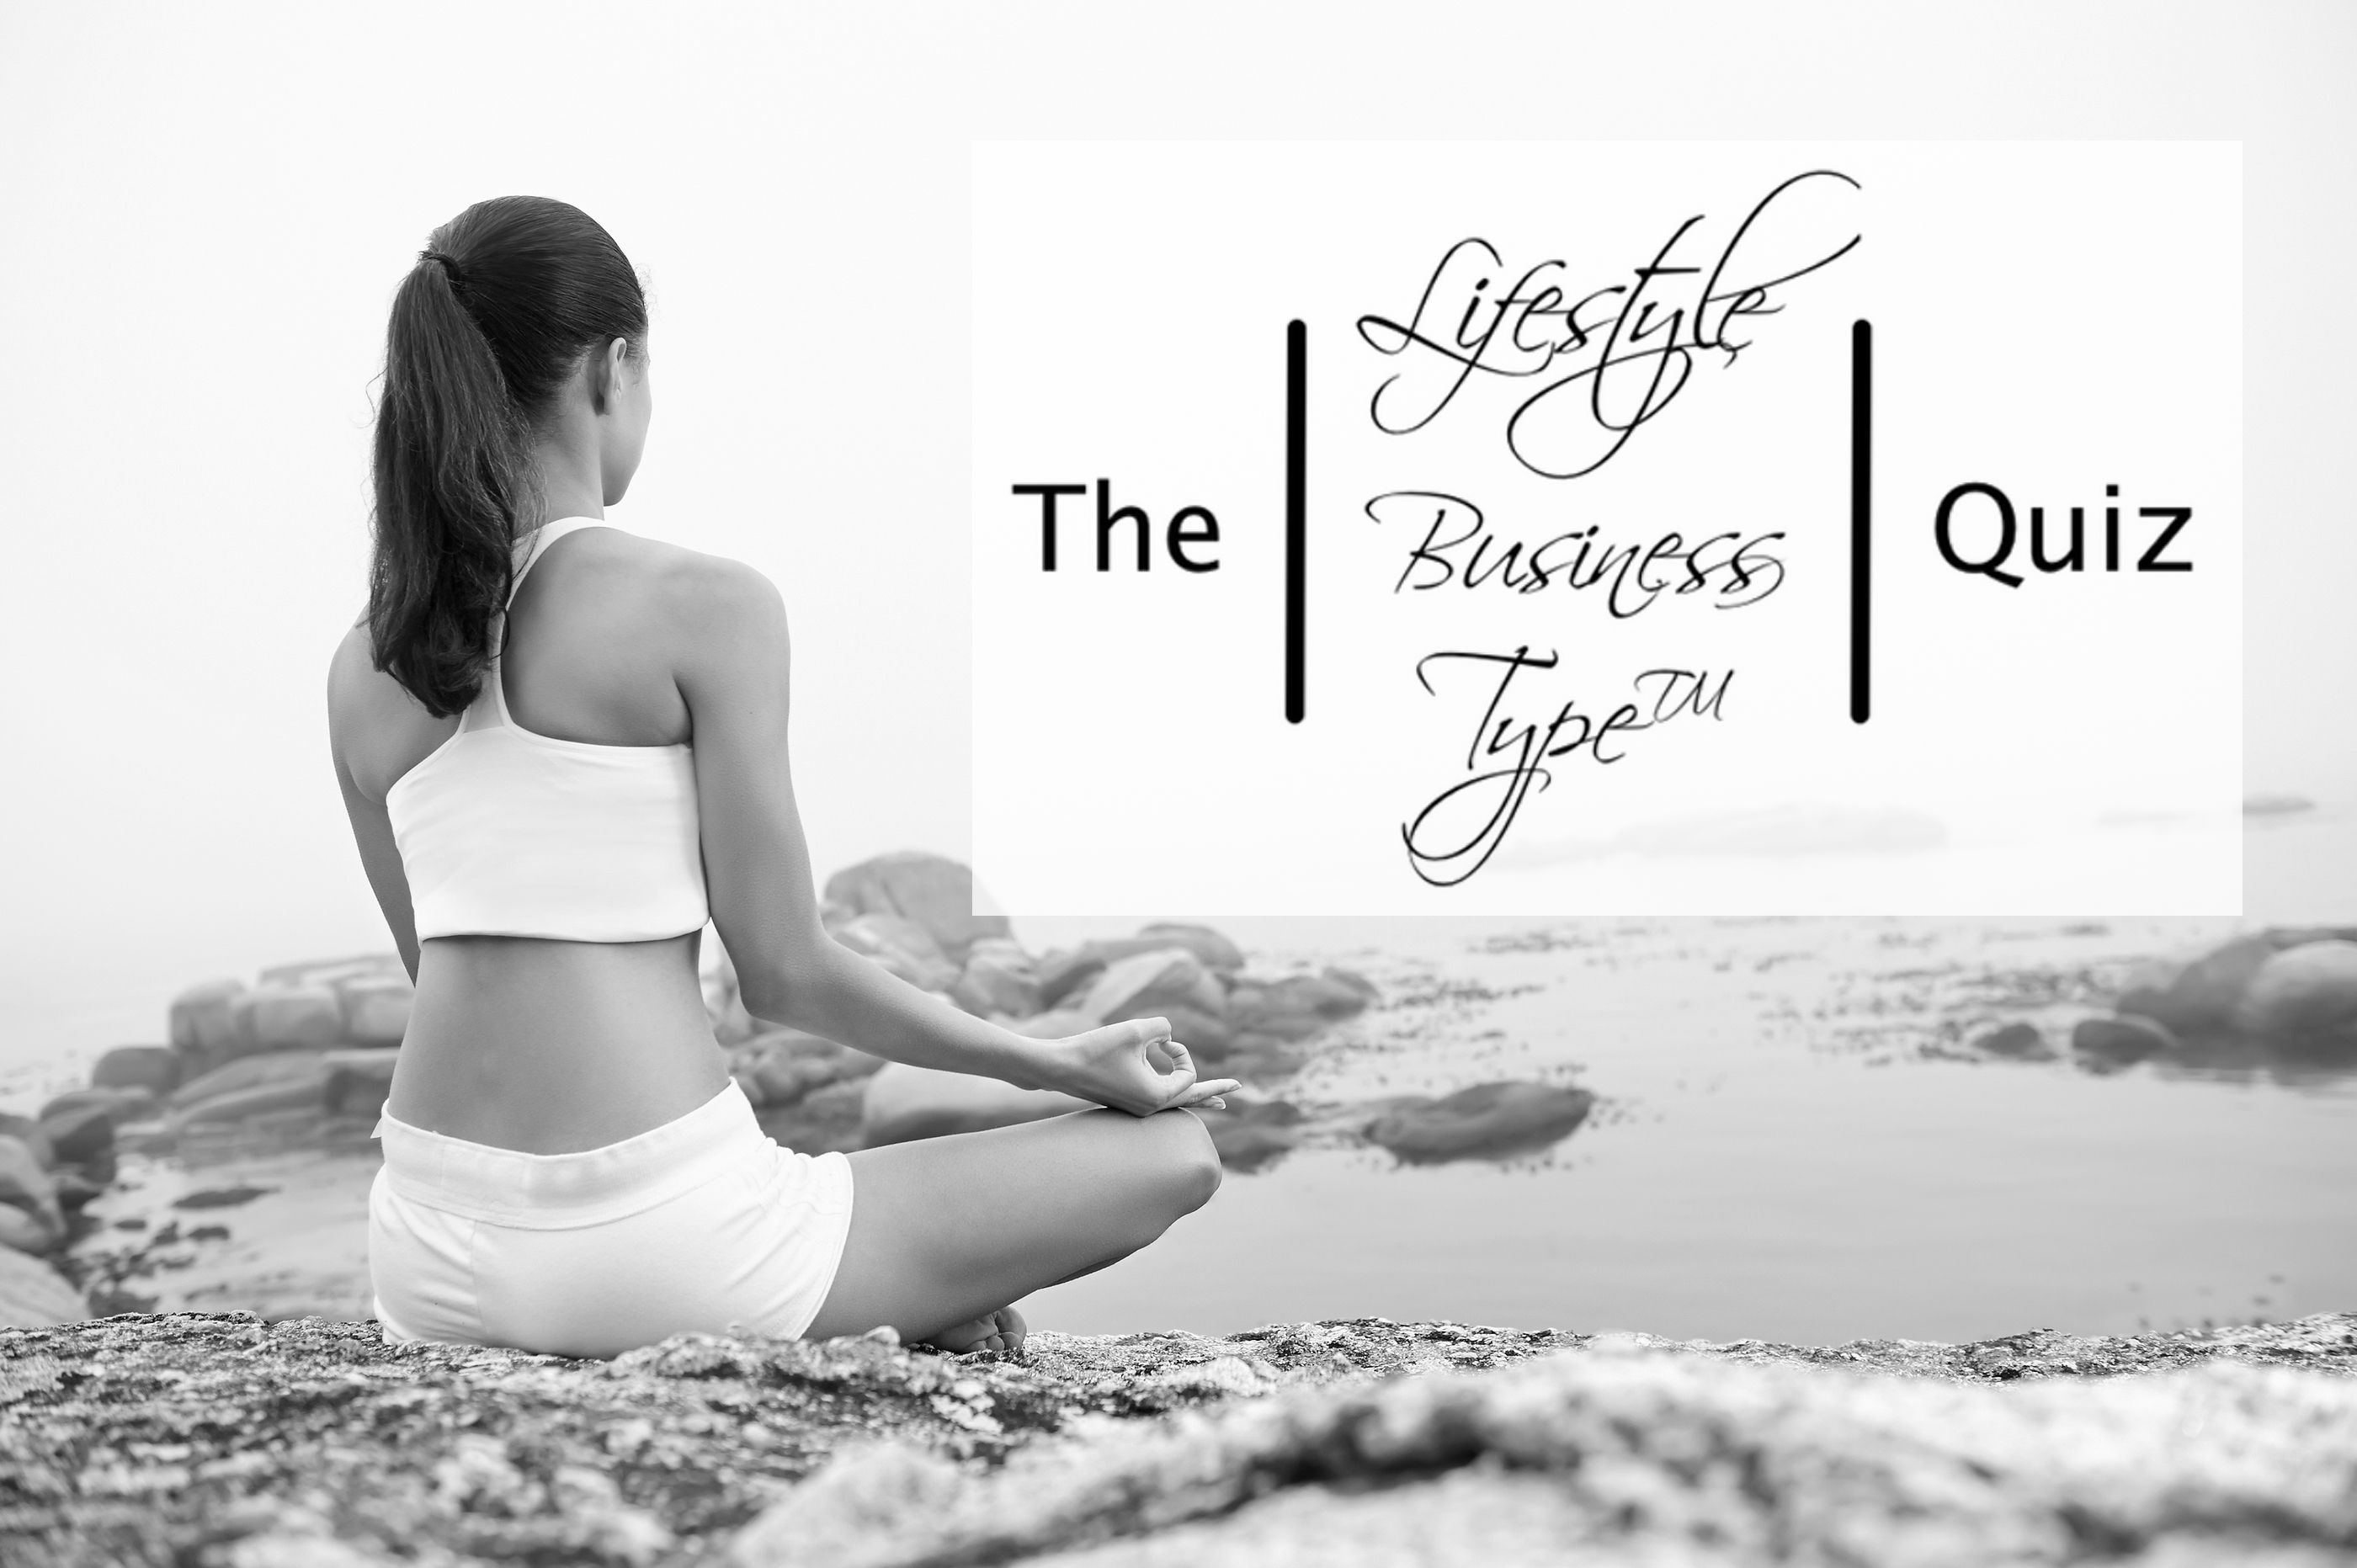 You have a desire! A desire for a Lifestyle Business that fulfills ...